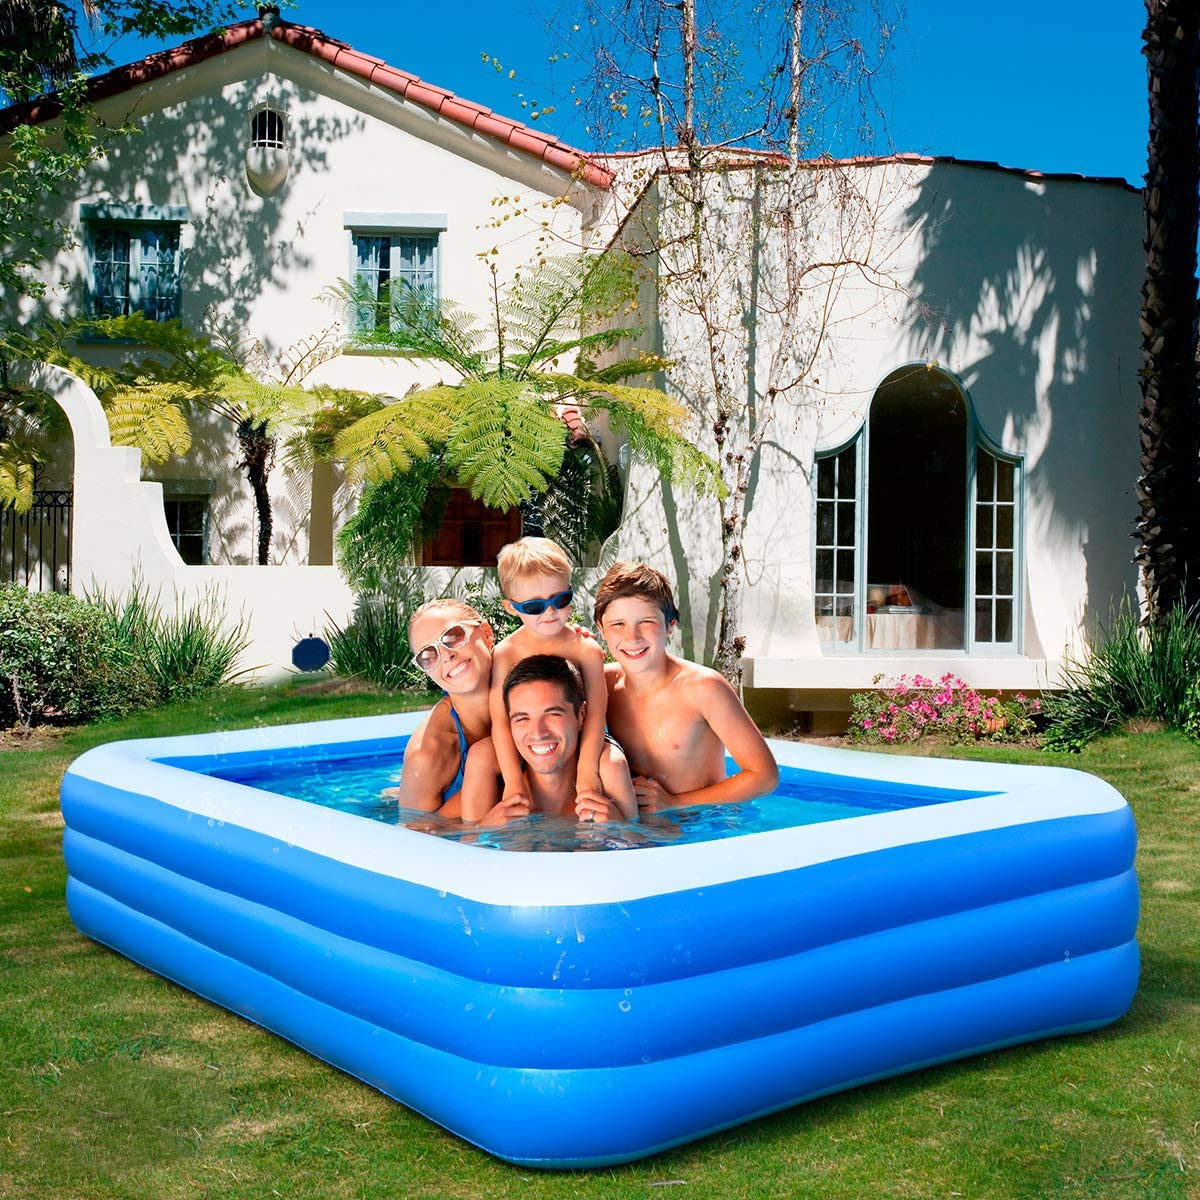 for Adults Ruixin Inflatable Swimming Pools Kids Outdoor 120X71X24 in Babies Garden,Backyard